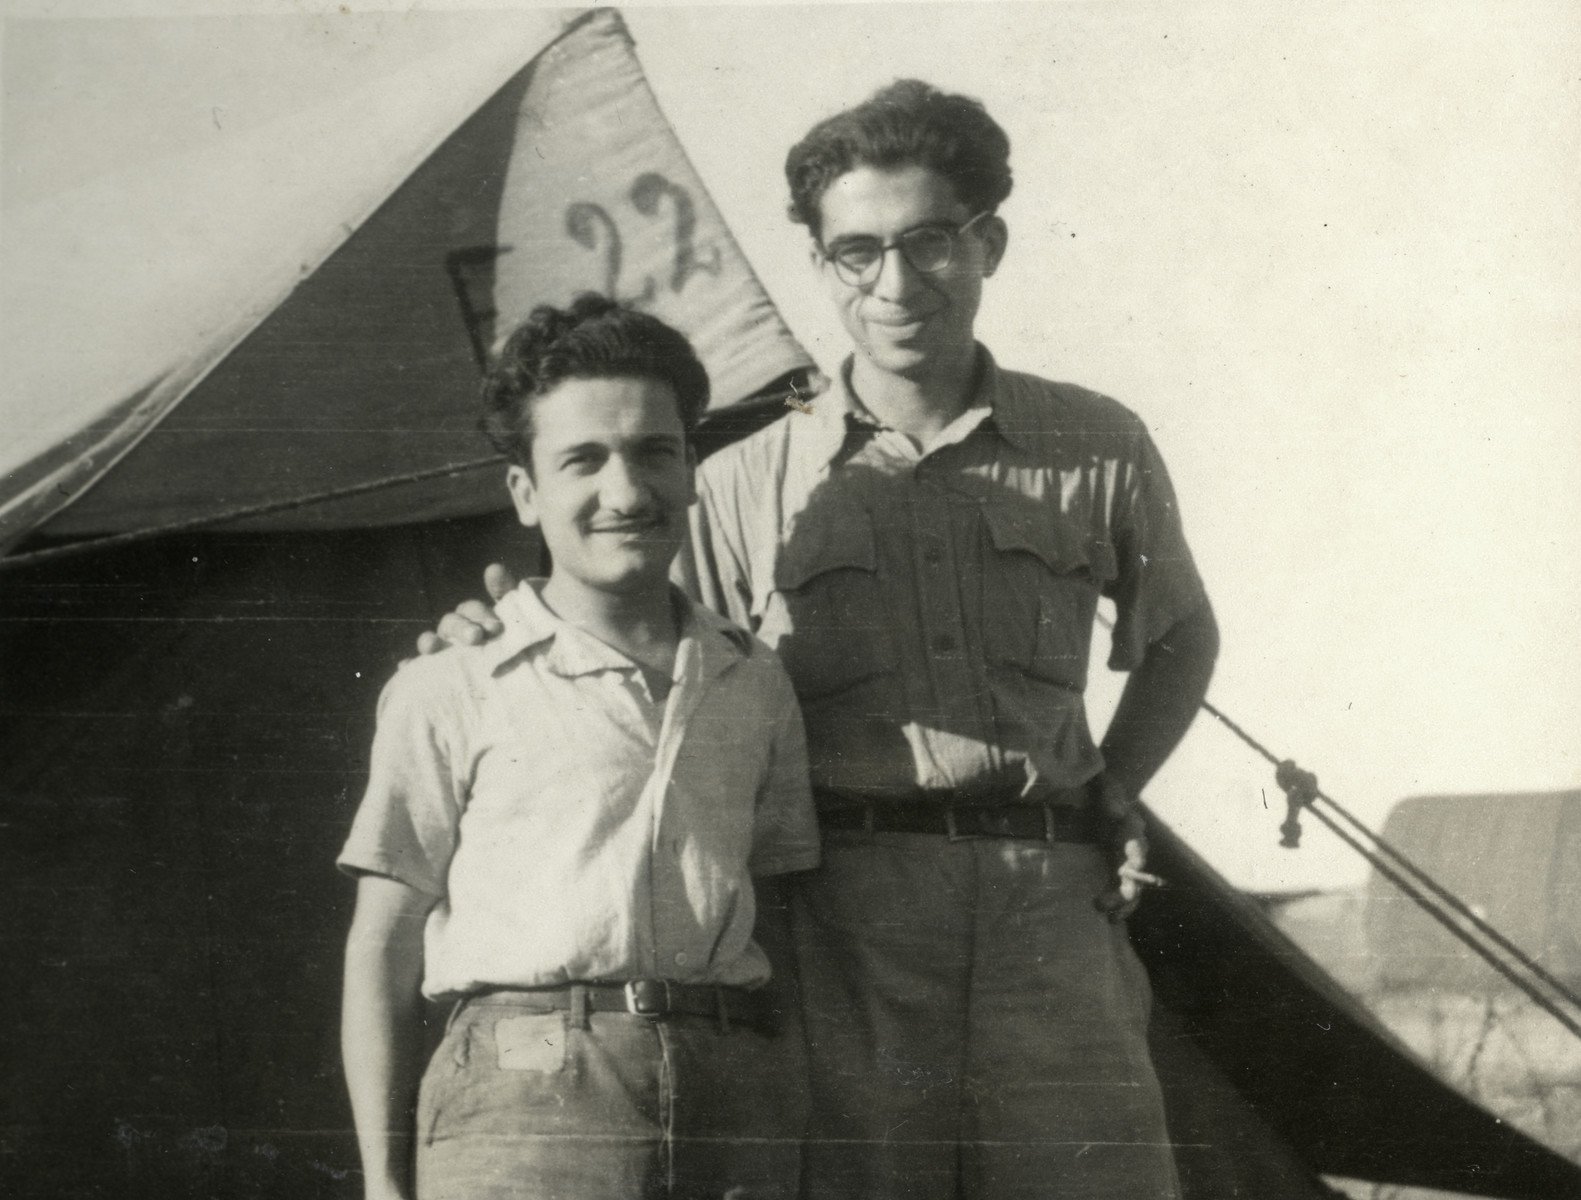 Dario Navarra and Giacomo Mattarazzi pose in front of a tent in a Cyprus refugee camp.